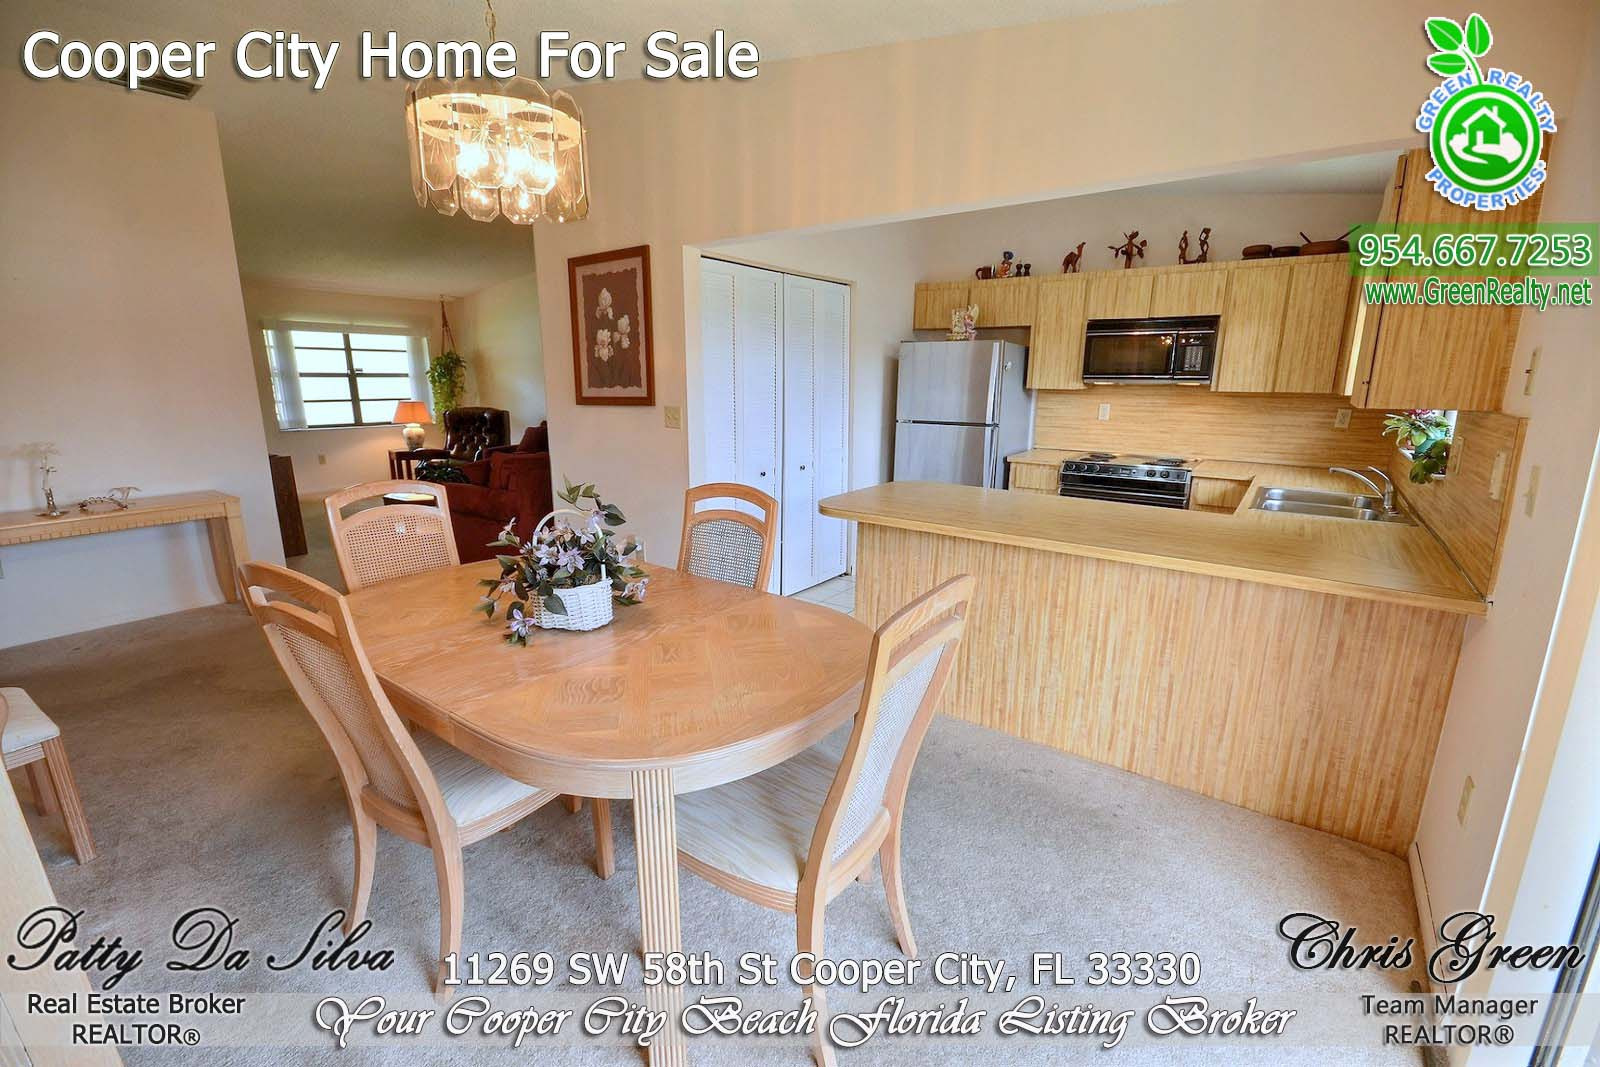 9 Cooper City Real Estate - Villas (14)